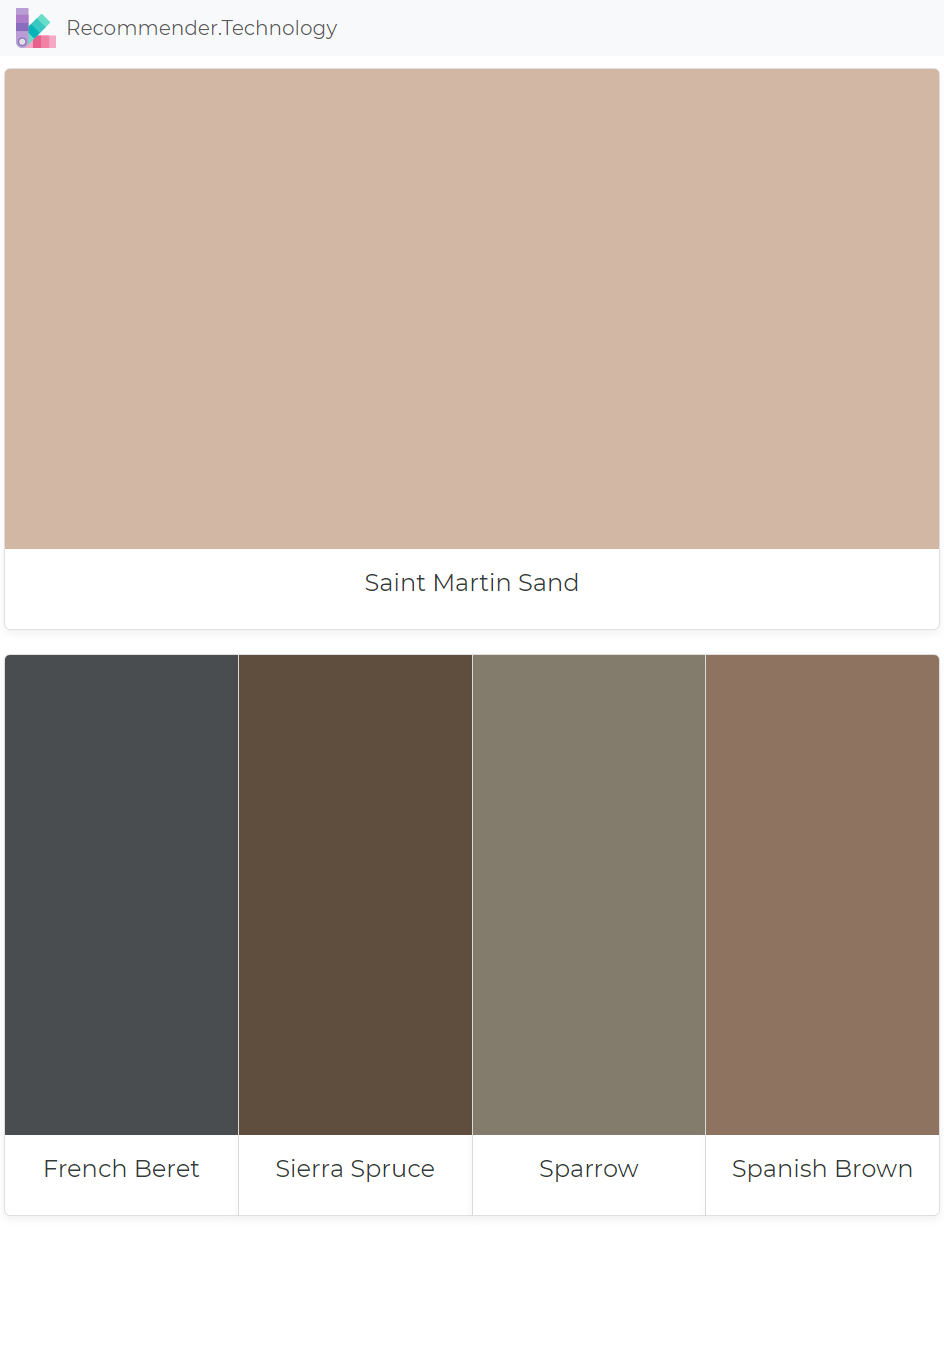 Saint Martin Sand French Beret Sierra Spruce Sparrow Spanish Brown Paint Color